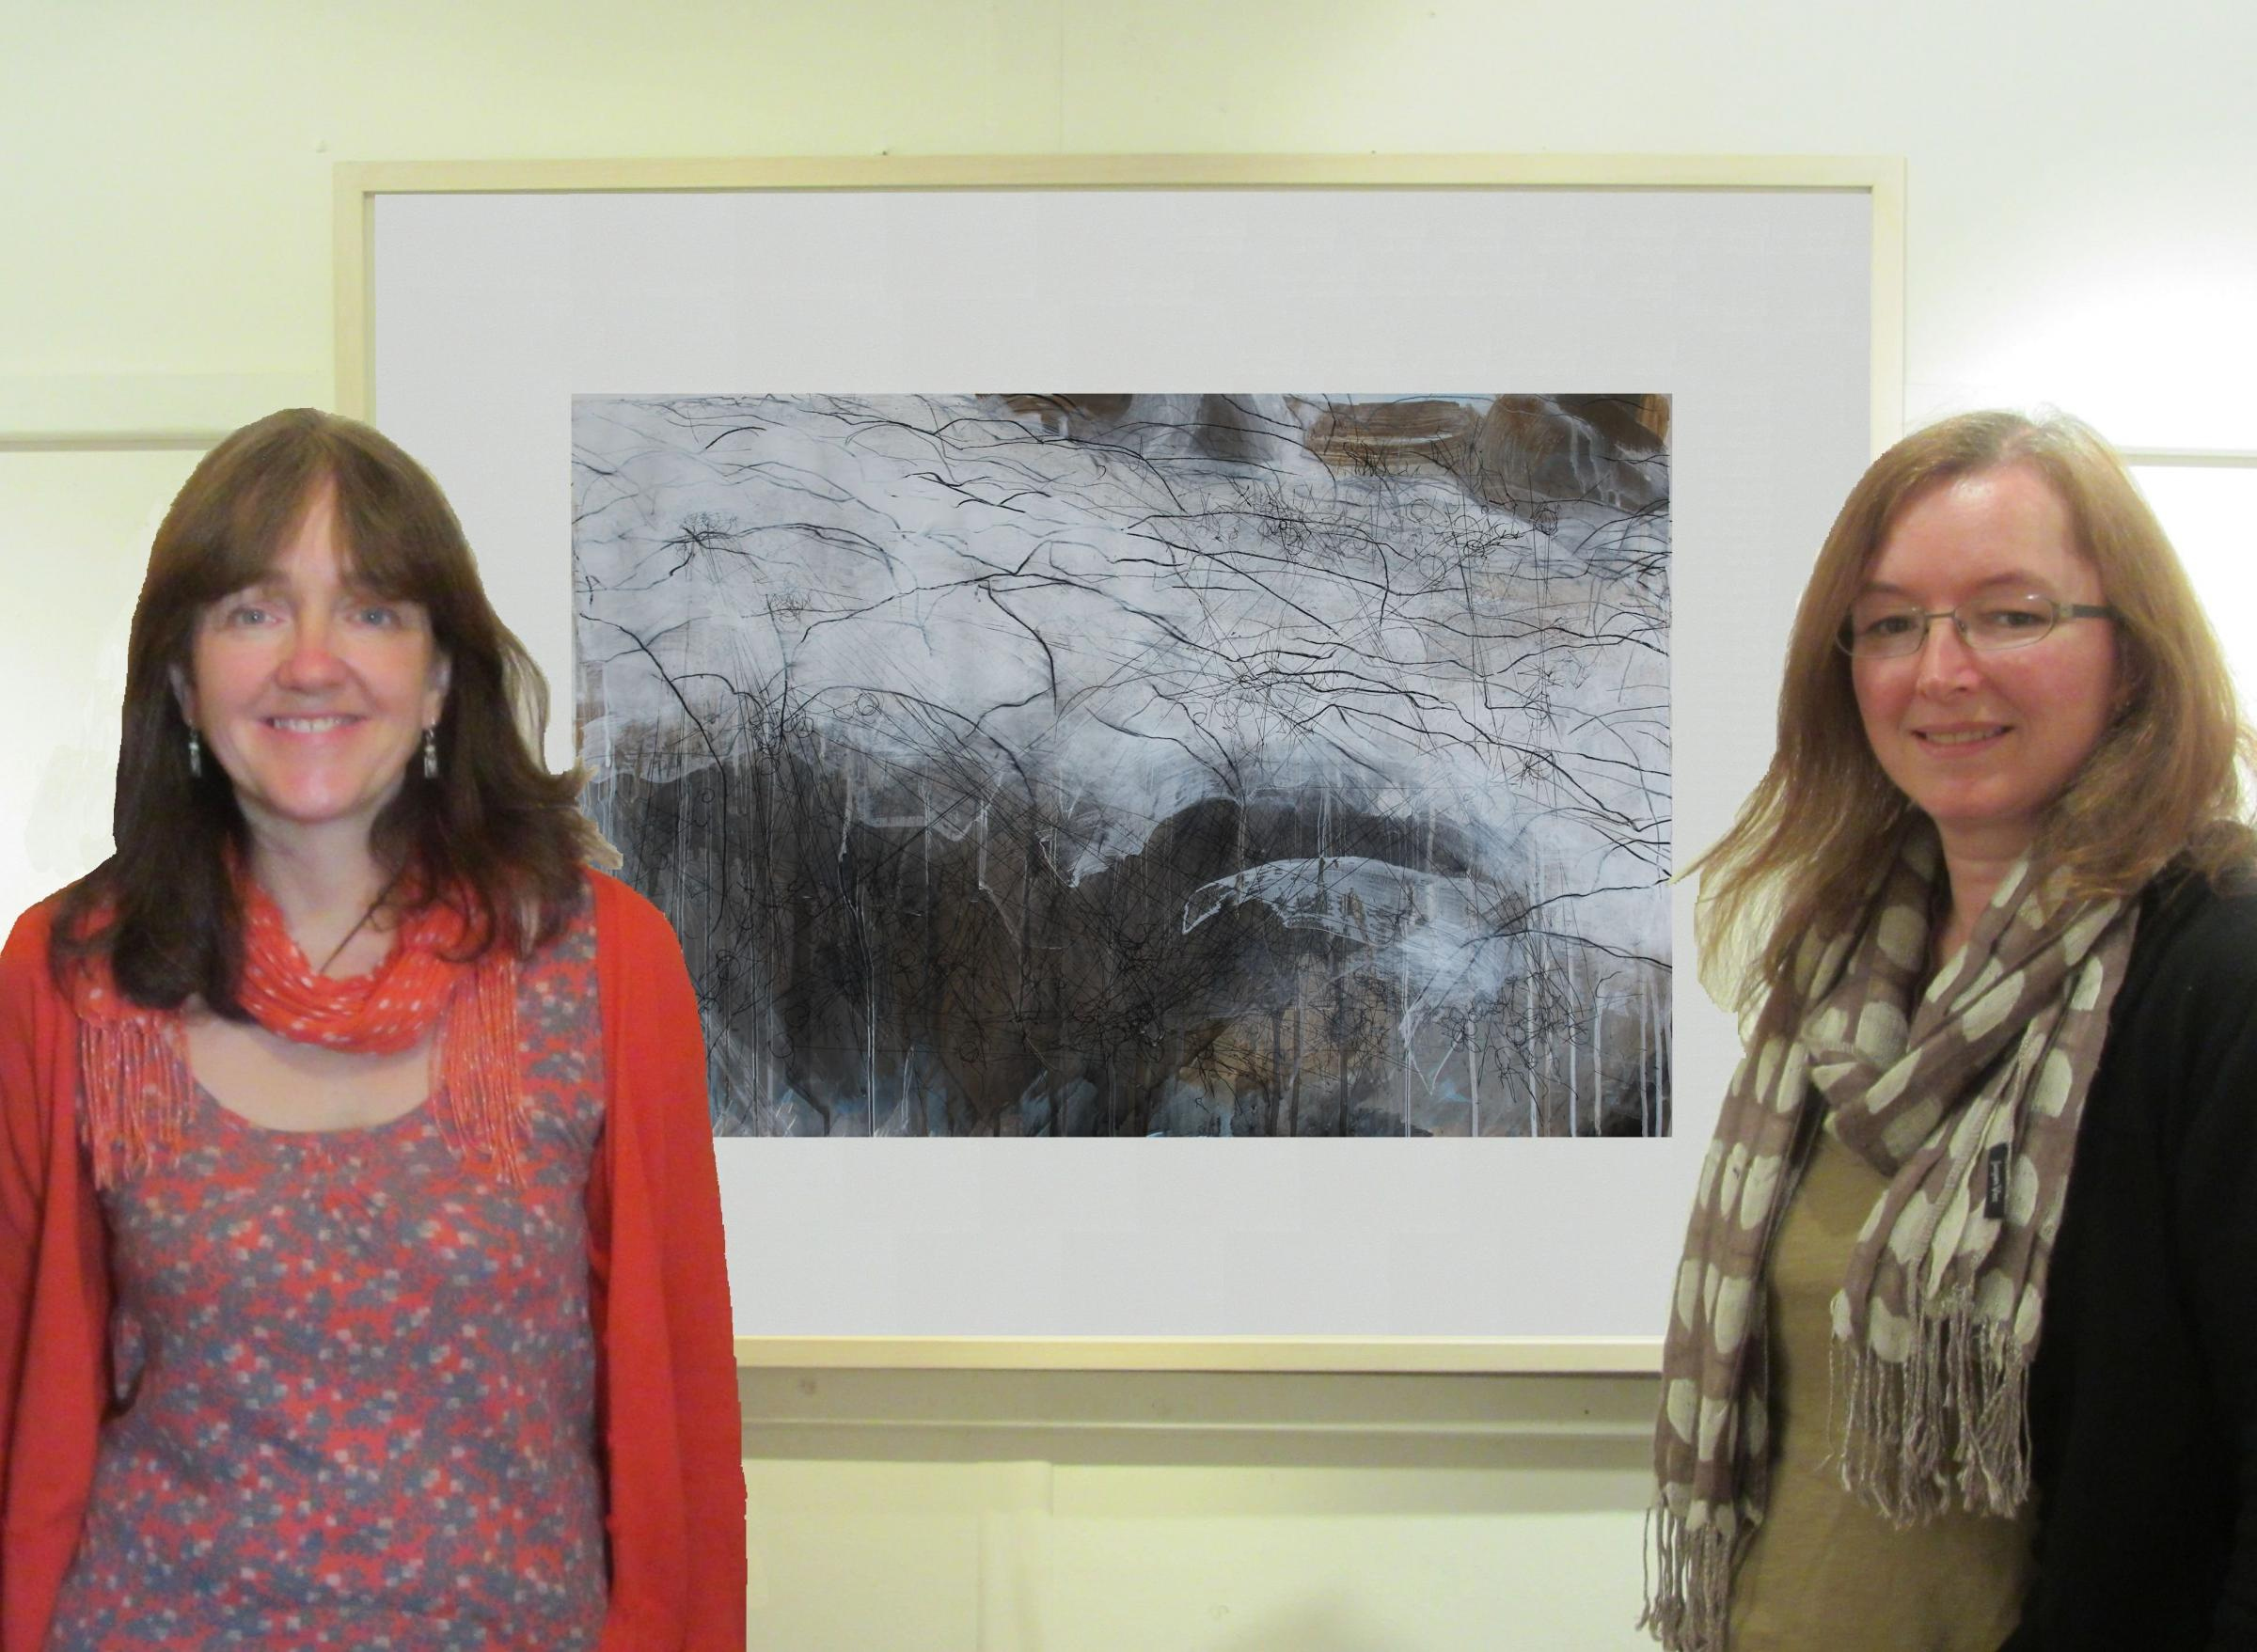 Artists Sara Dudman and Debbie Locke